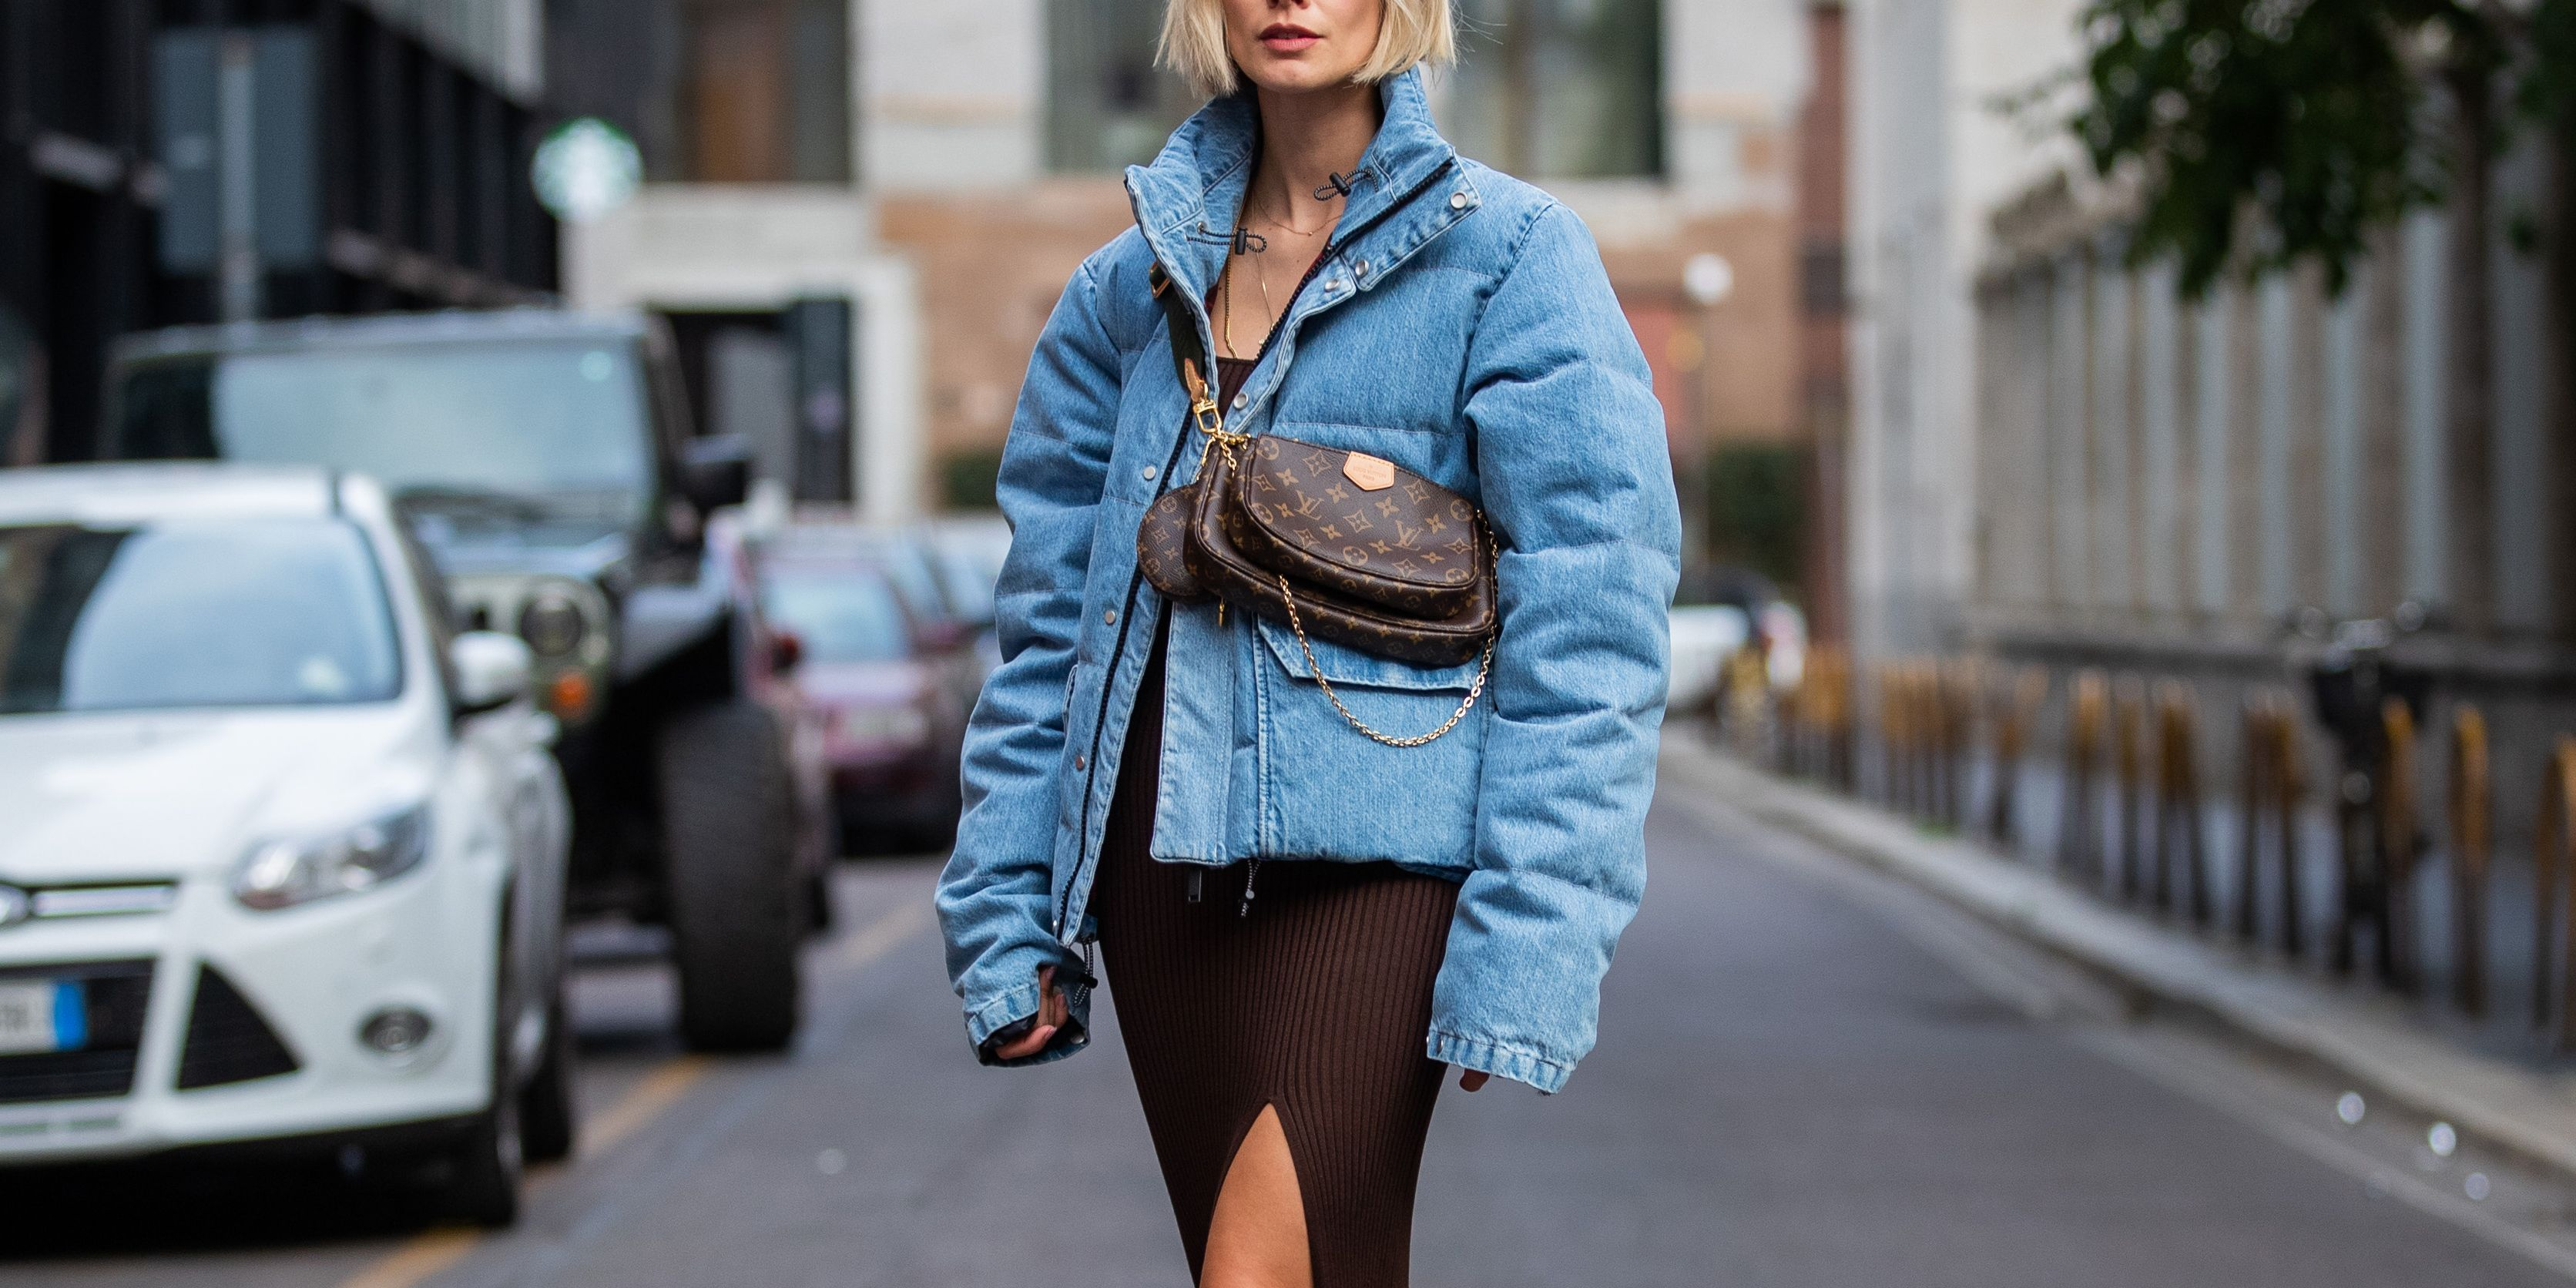 26 Denim Jacket Outfit Ideas That Are Stylish as Hell